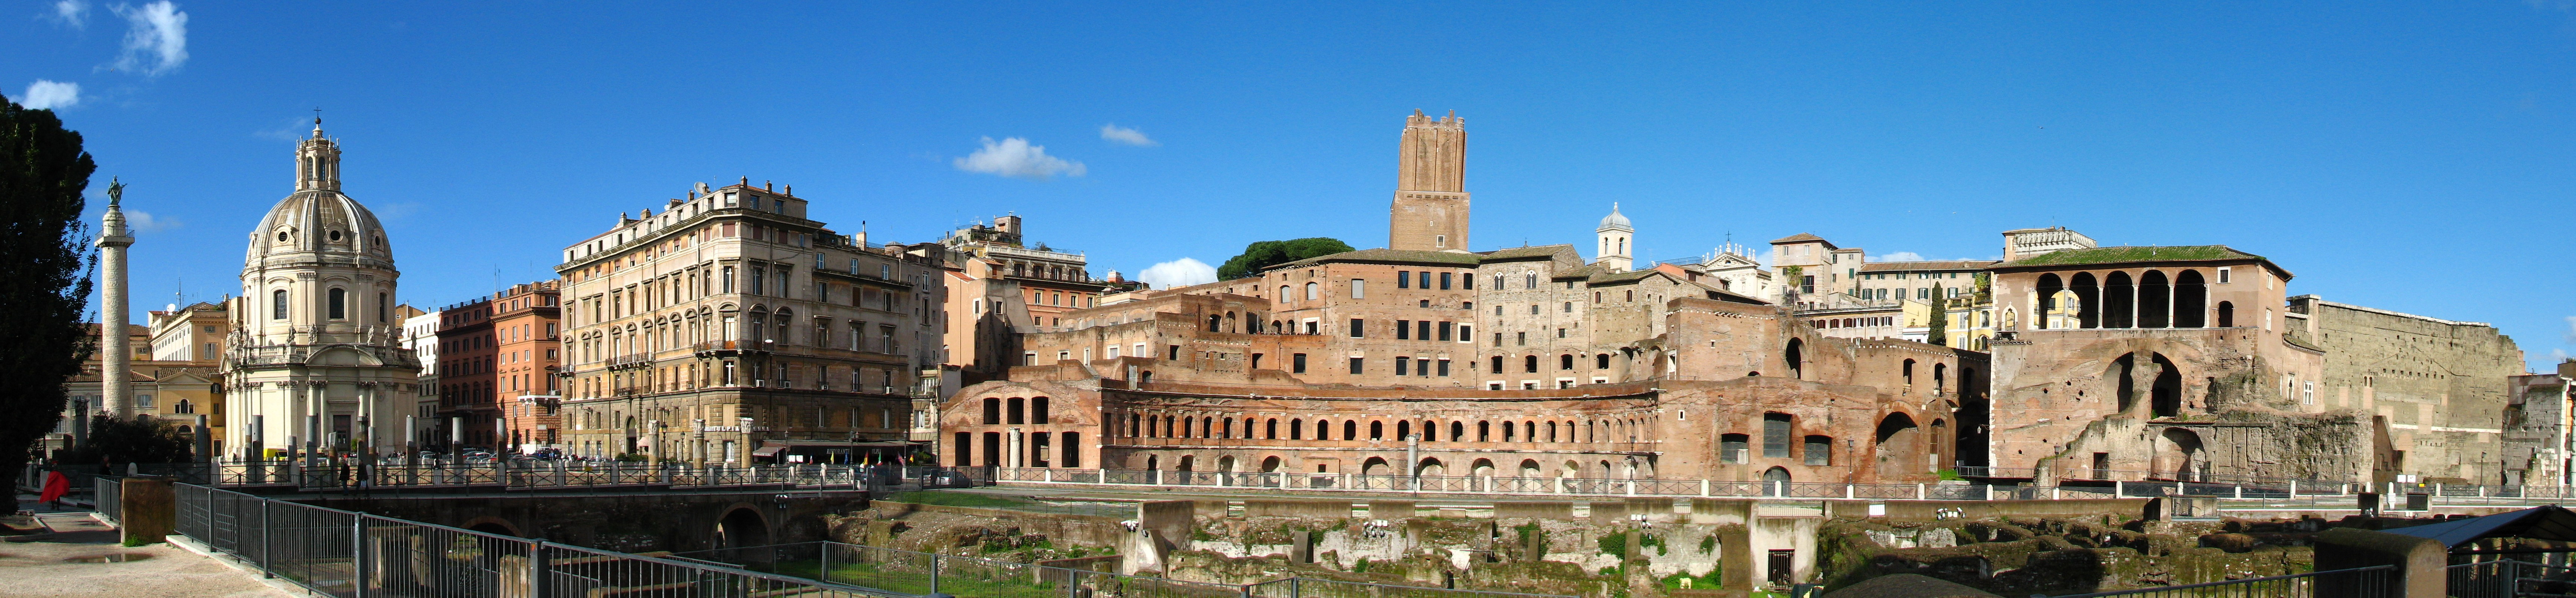 A panoramic view of the Trajan's Forum in Rome, on the far left is the Trajan's Column.